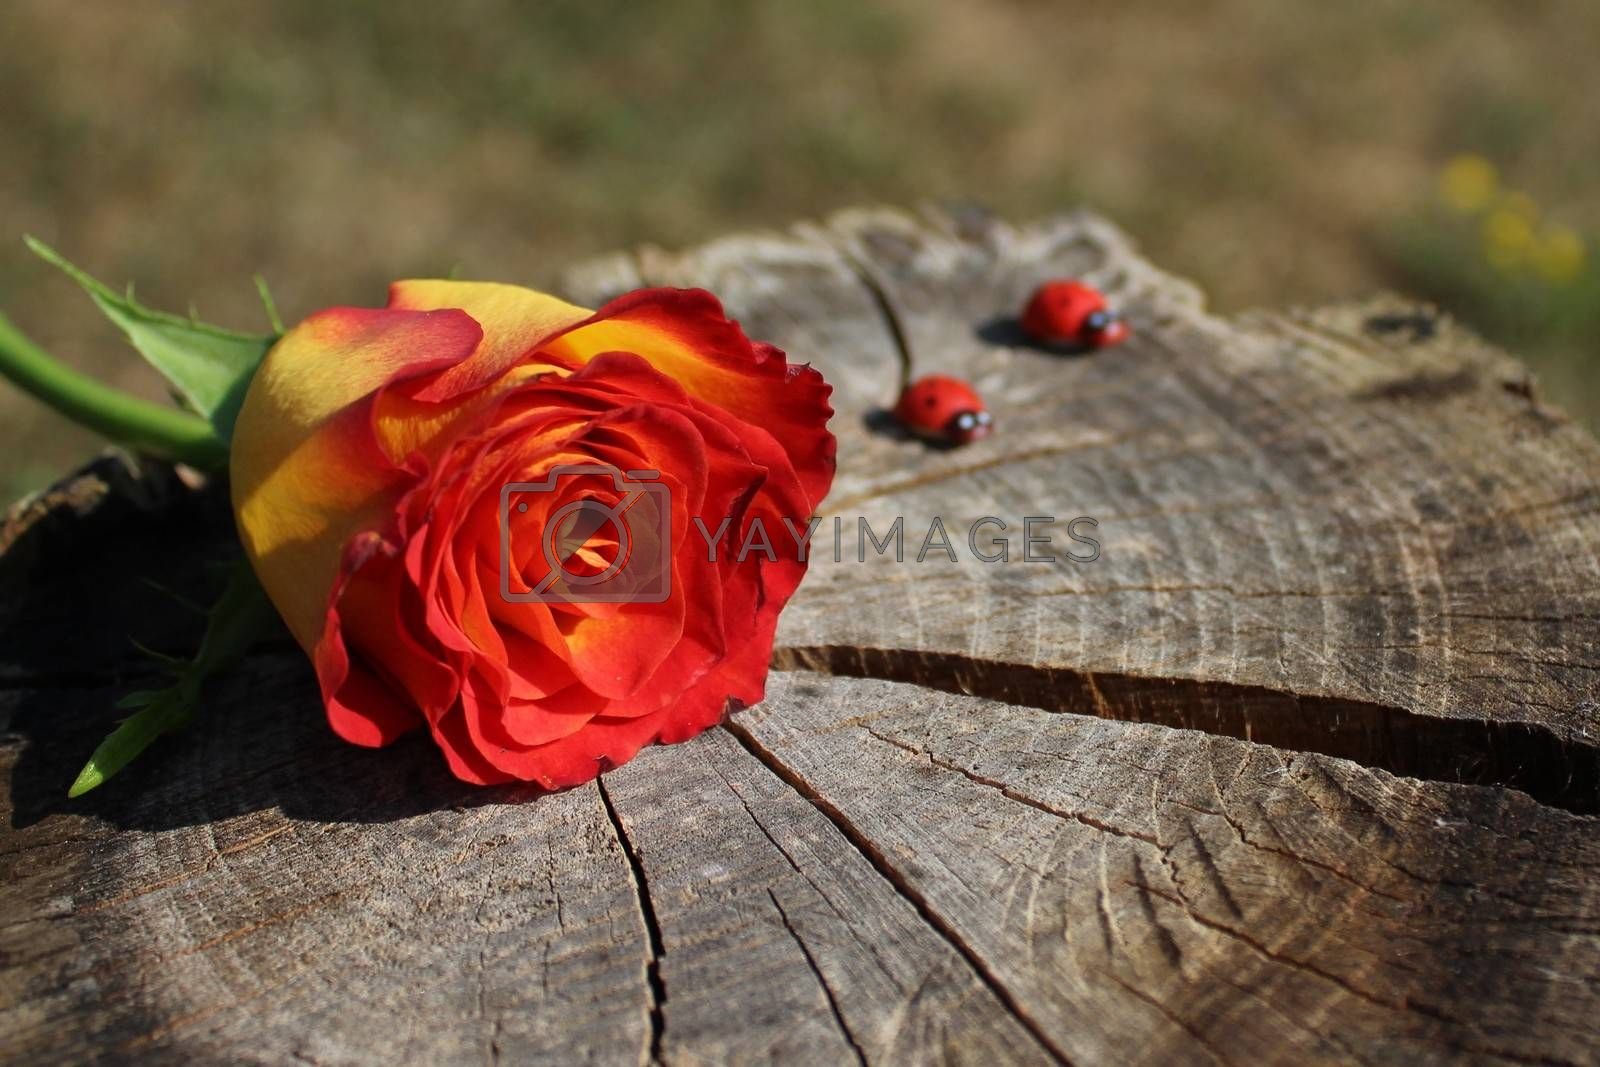 Royalty free image of a rose on wooden ground by martina_unbehauen